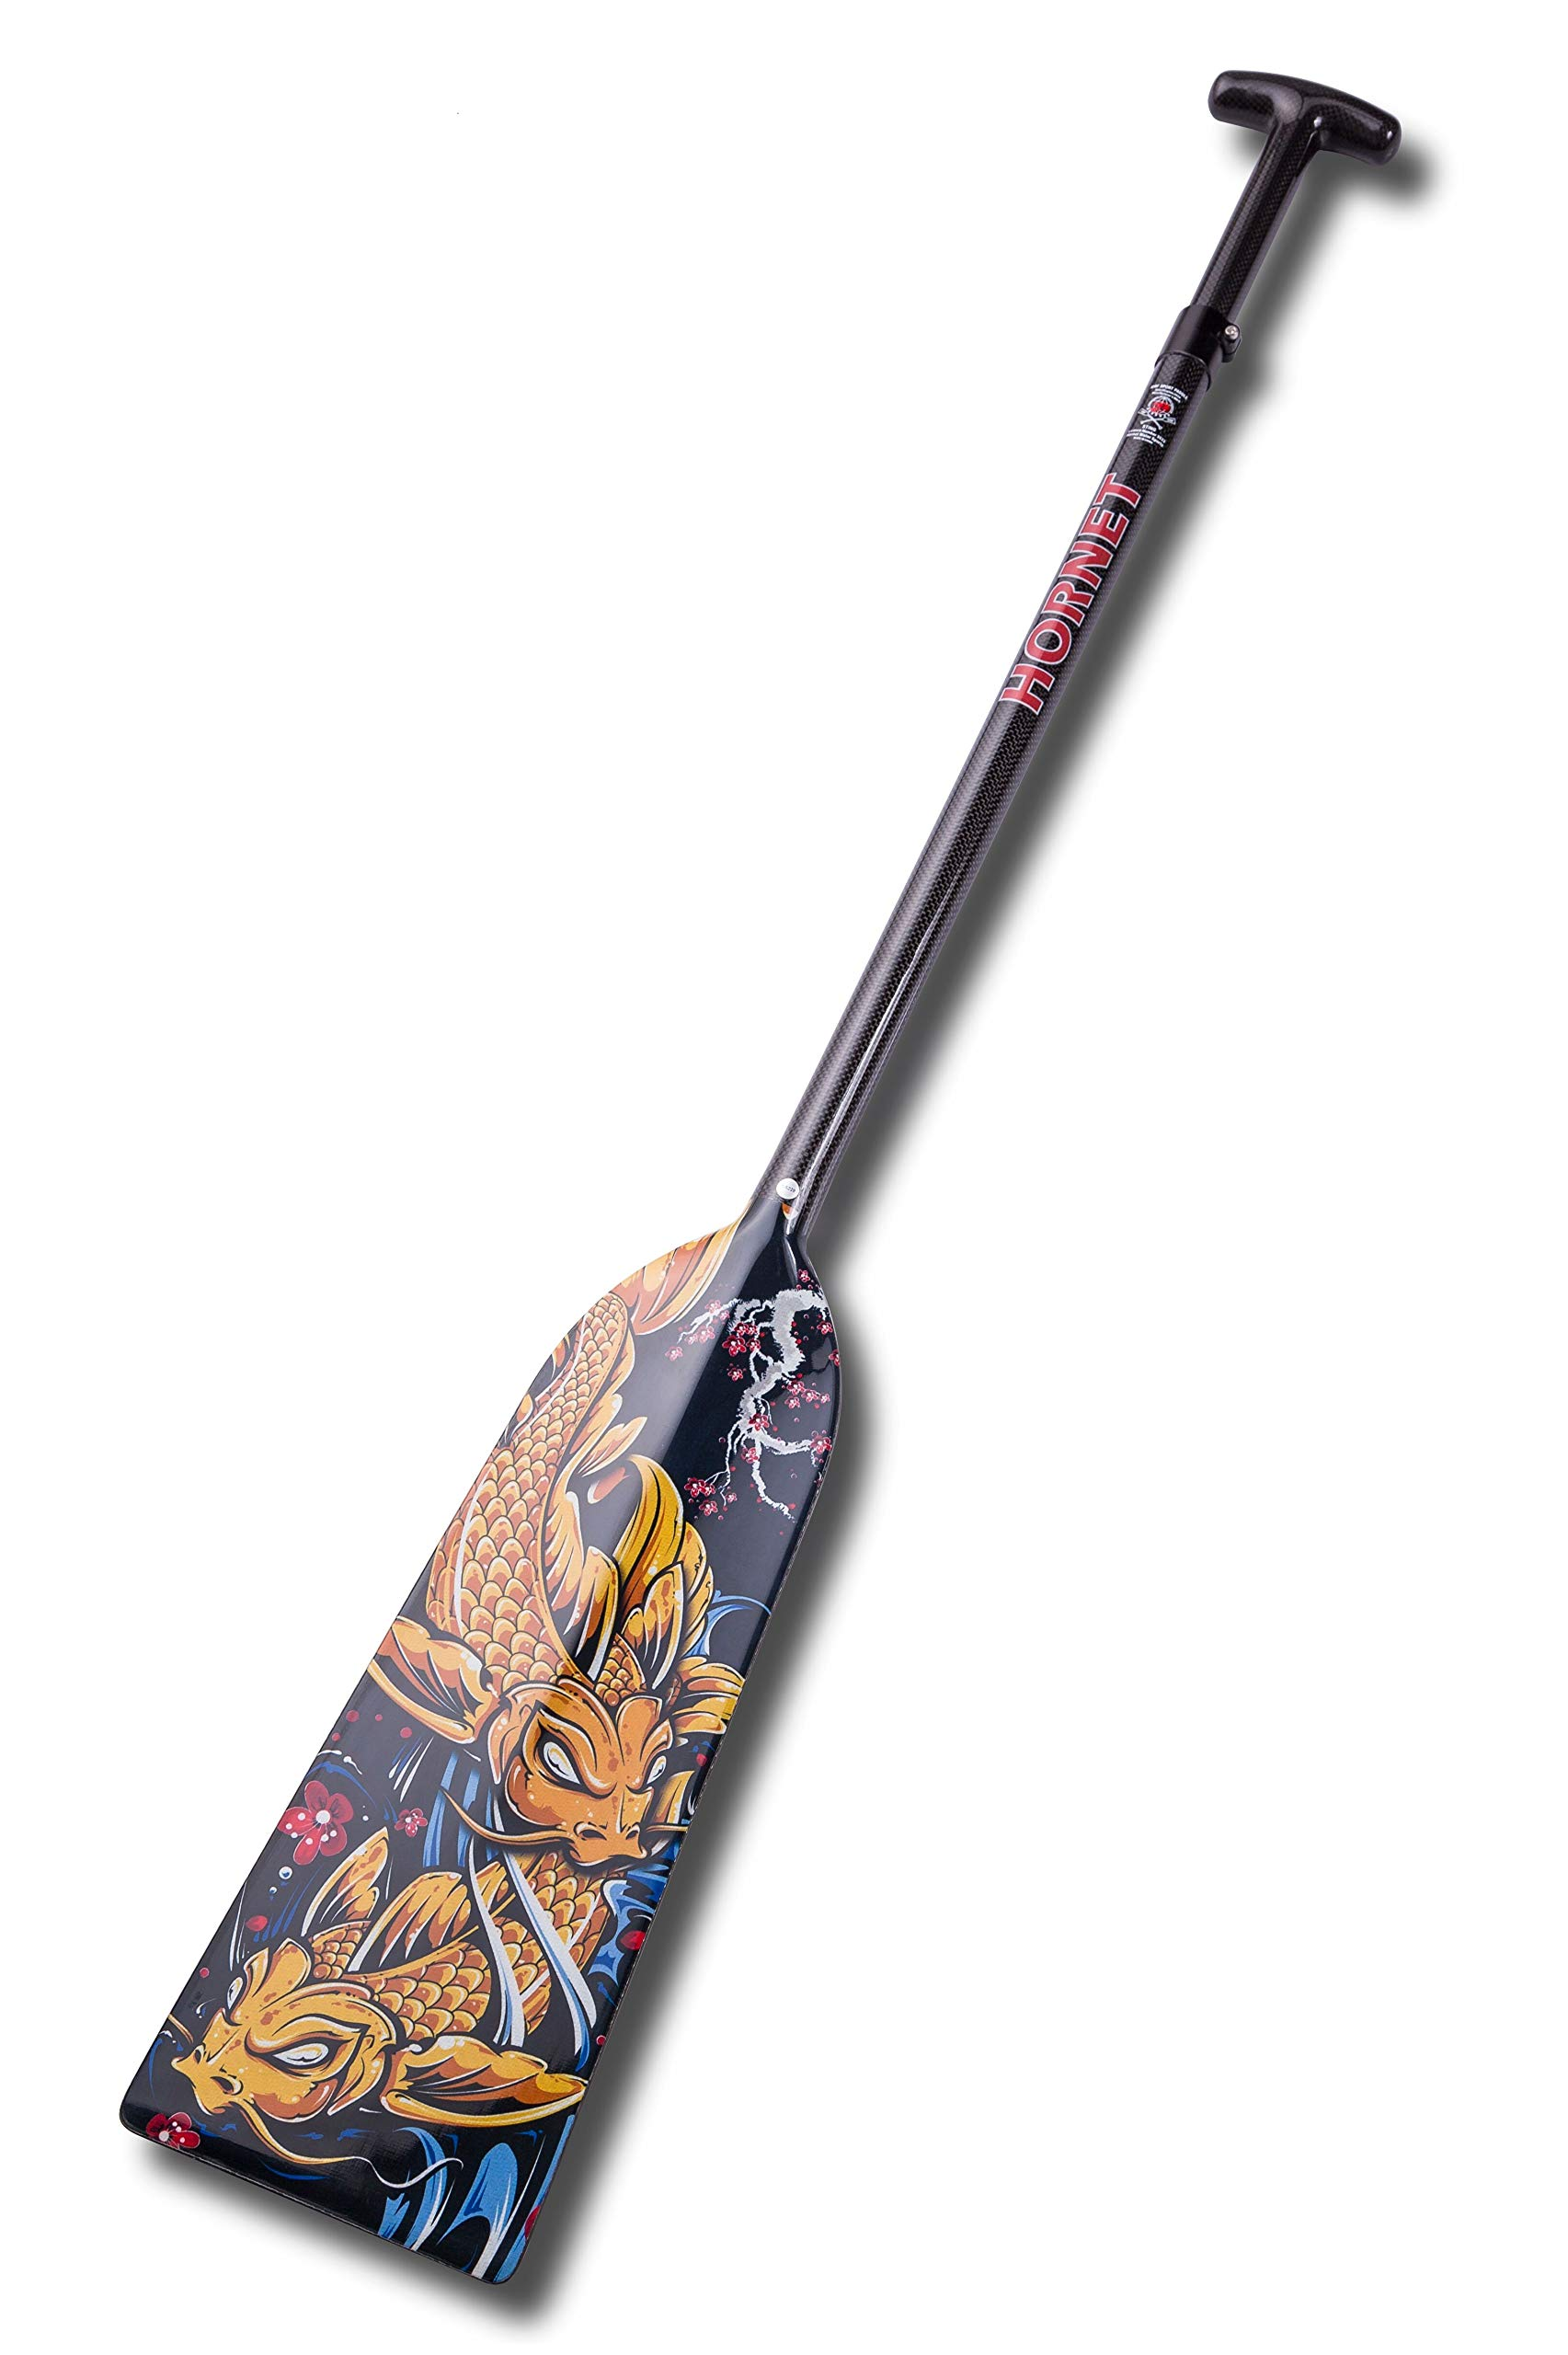 Hornet Watersports Dragon Boat Paddle Adjustable Carbon Fiber Sakura Koi Lightweight IDBF Approved by Hornet Watersports